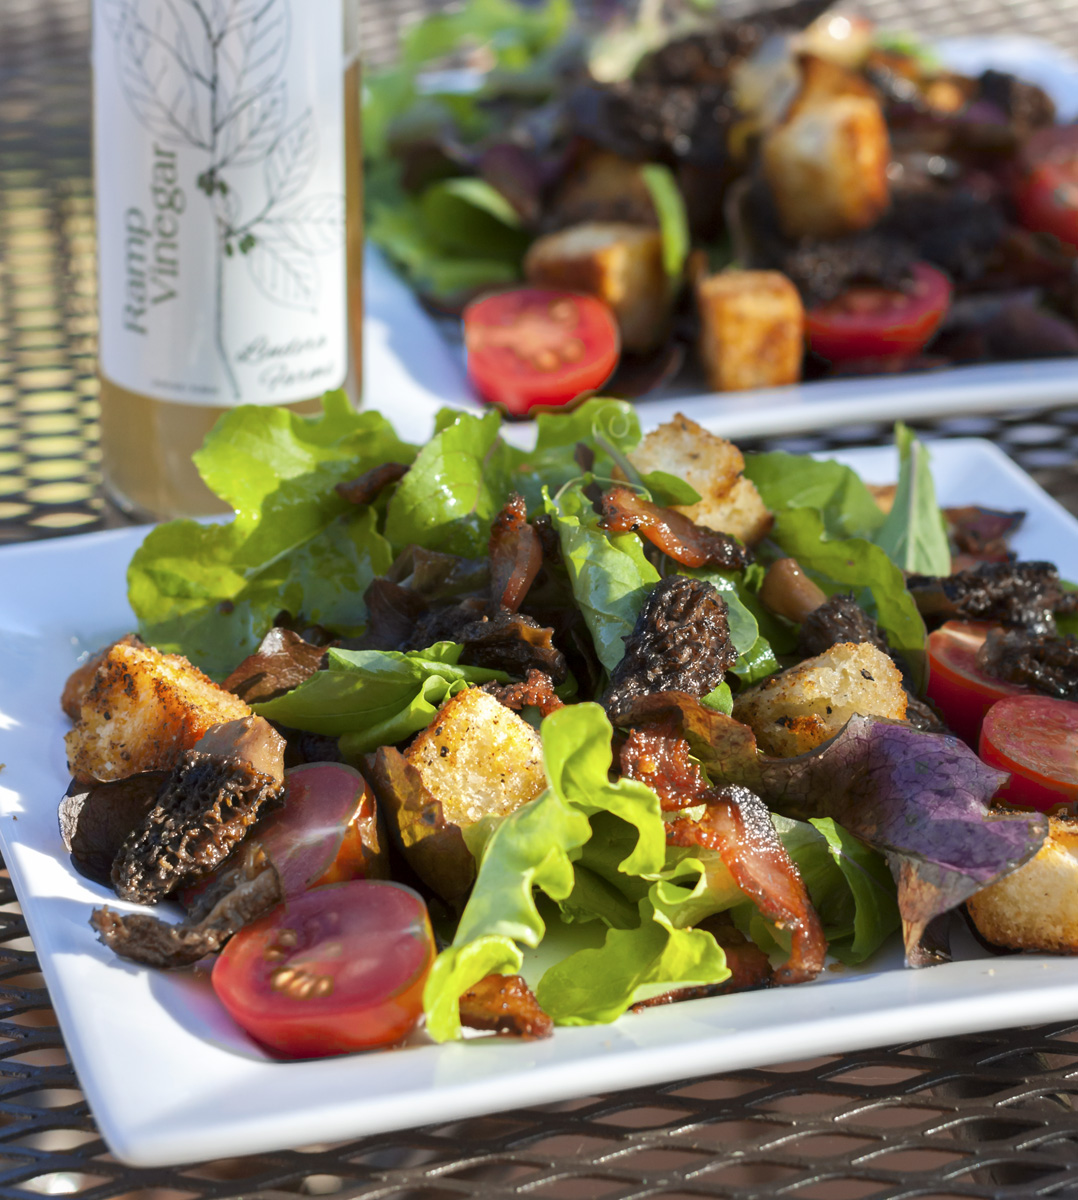 BLT Salad with Jowl Bacon and Morels